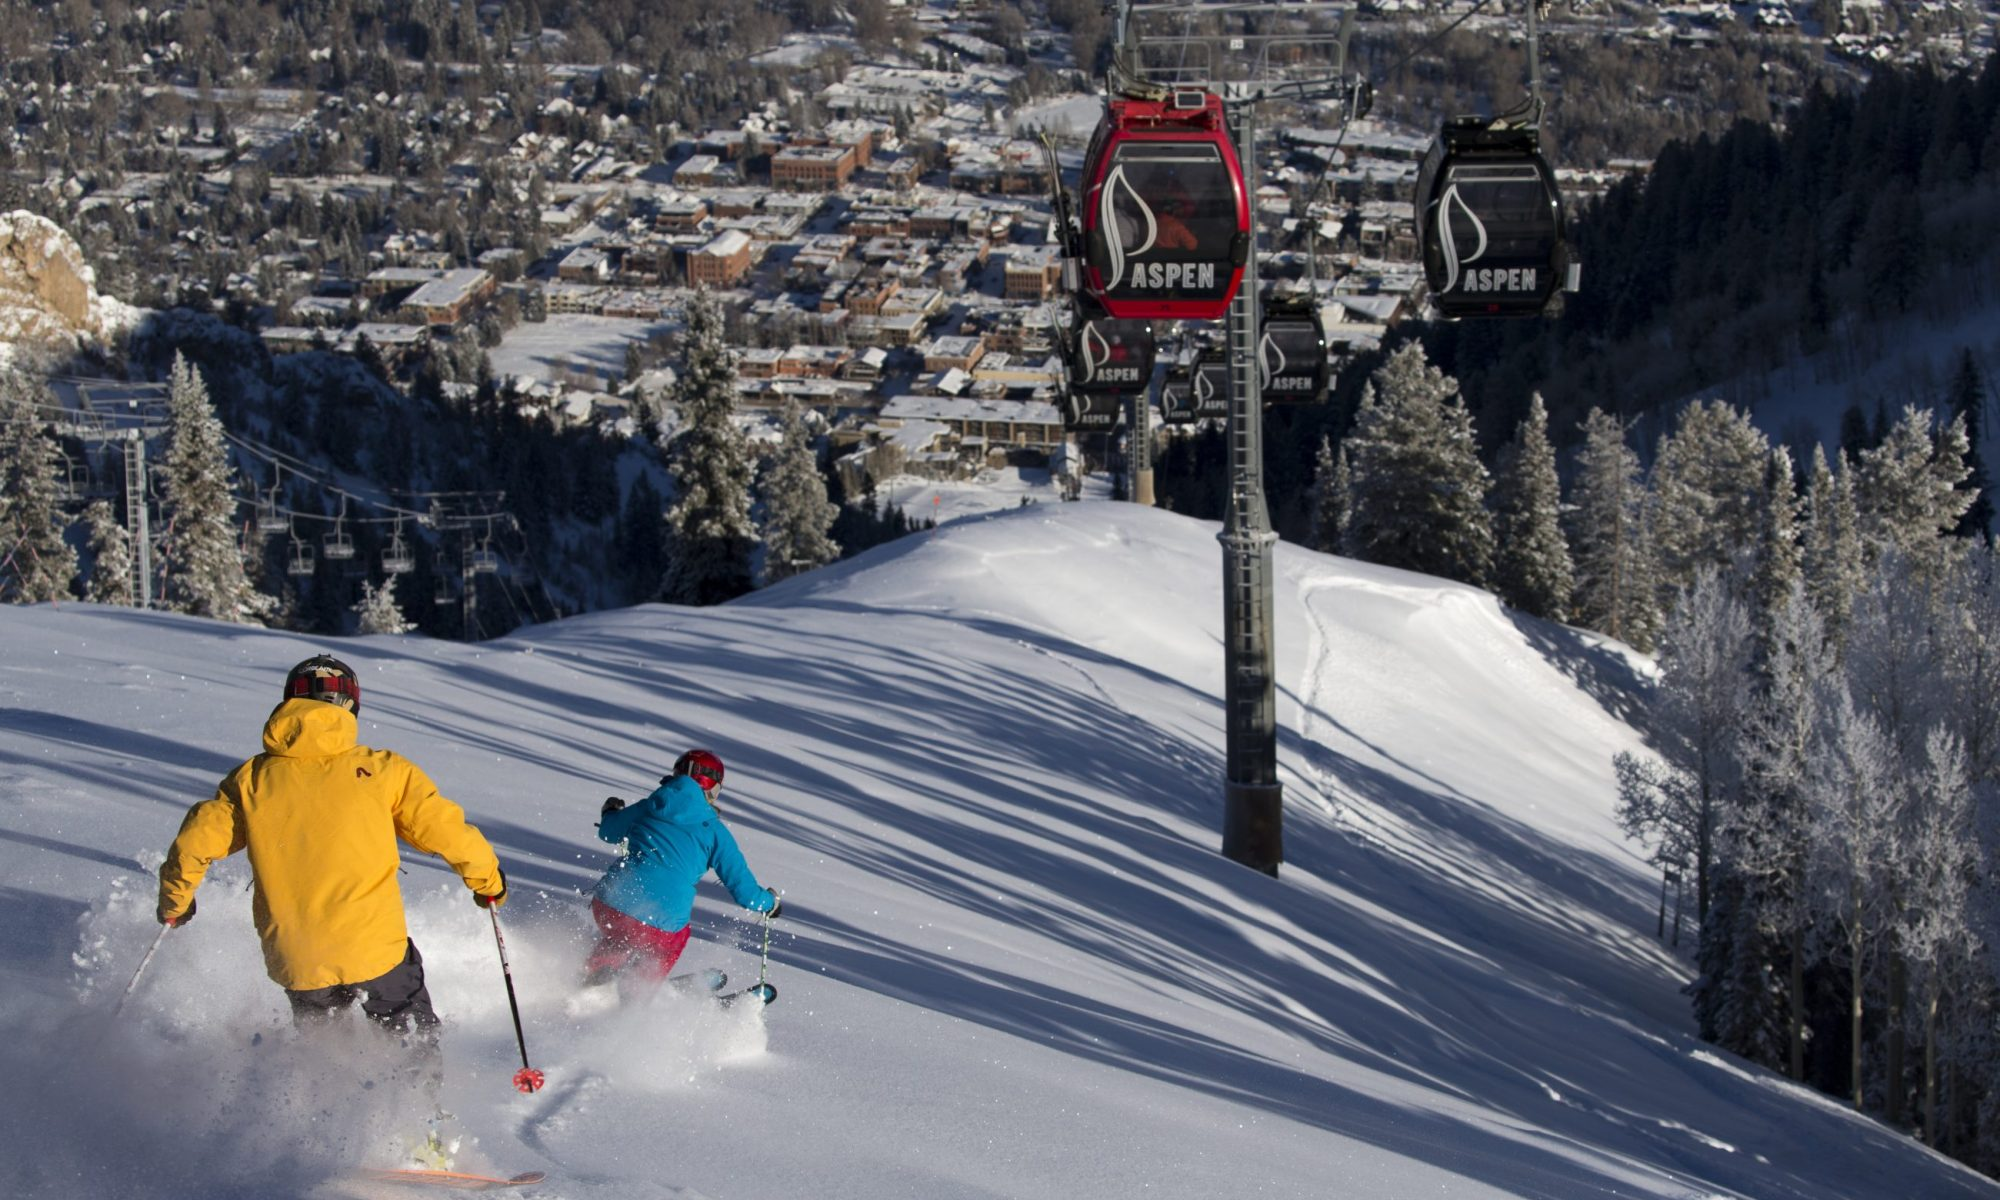 wwwMattpowerphotography.com January 21 2015 Aspen Mountain Powder day Tj David Darcy Connover Chase Demillner (SB)Get your IKON season pass at the lowest available rate until May 1st. Get your IKON season pass at the lowest available rate until May 1st.